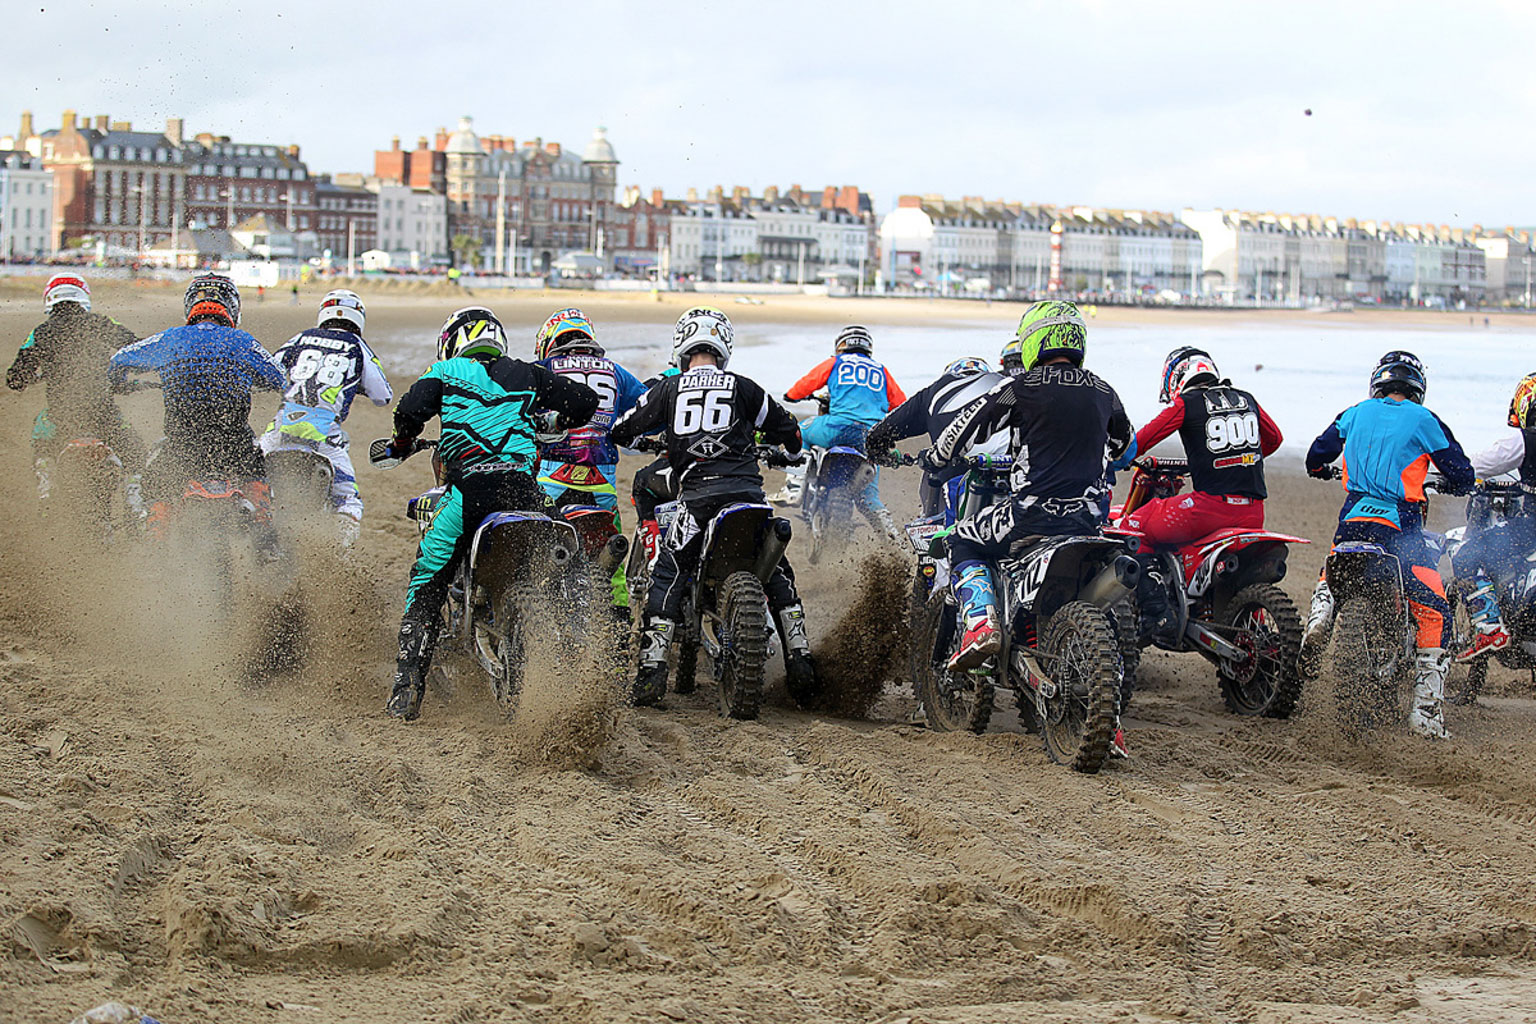 Blast off for the Experts in moto two